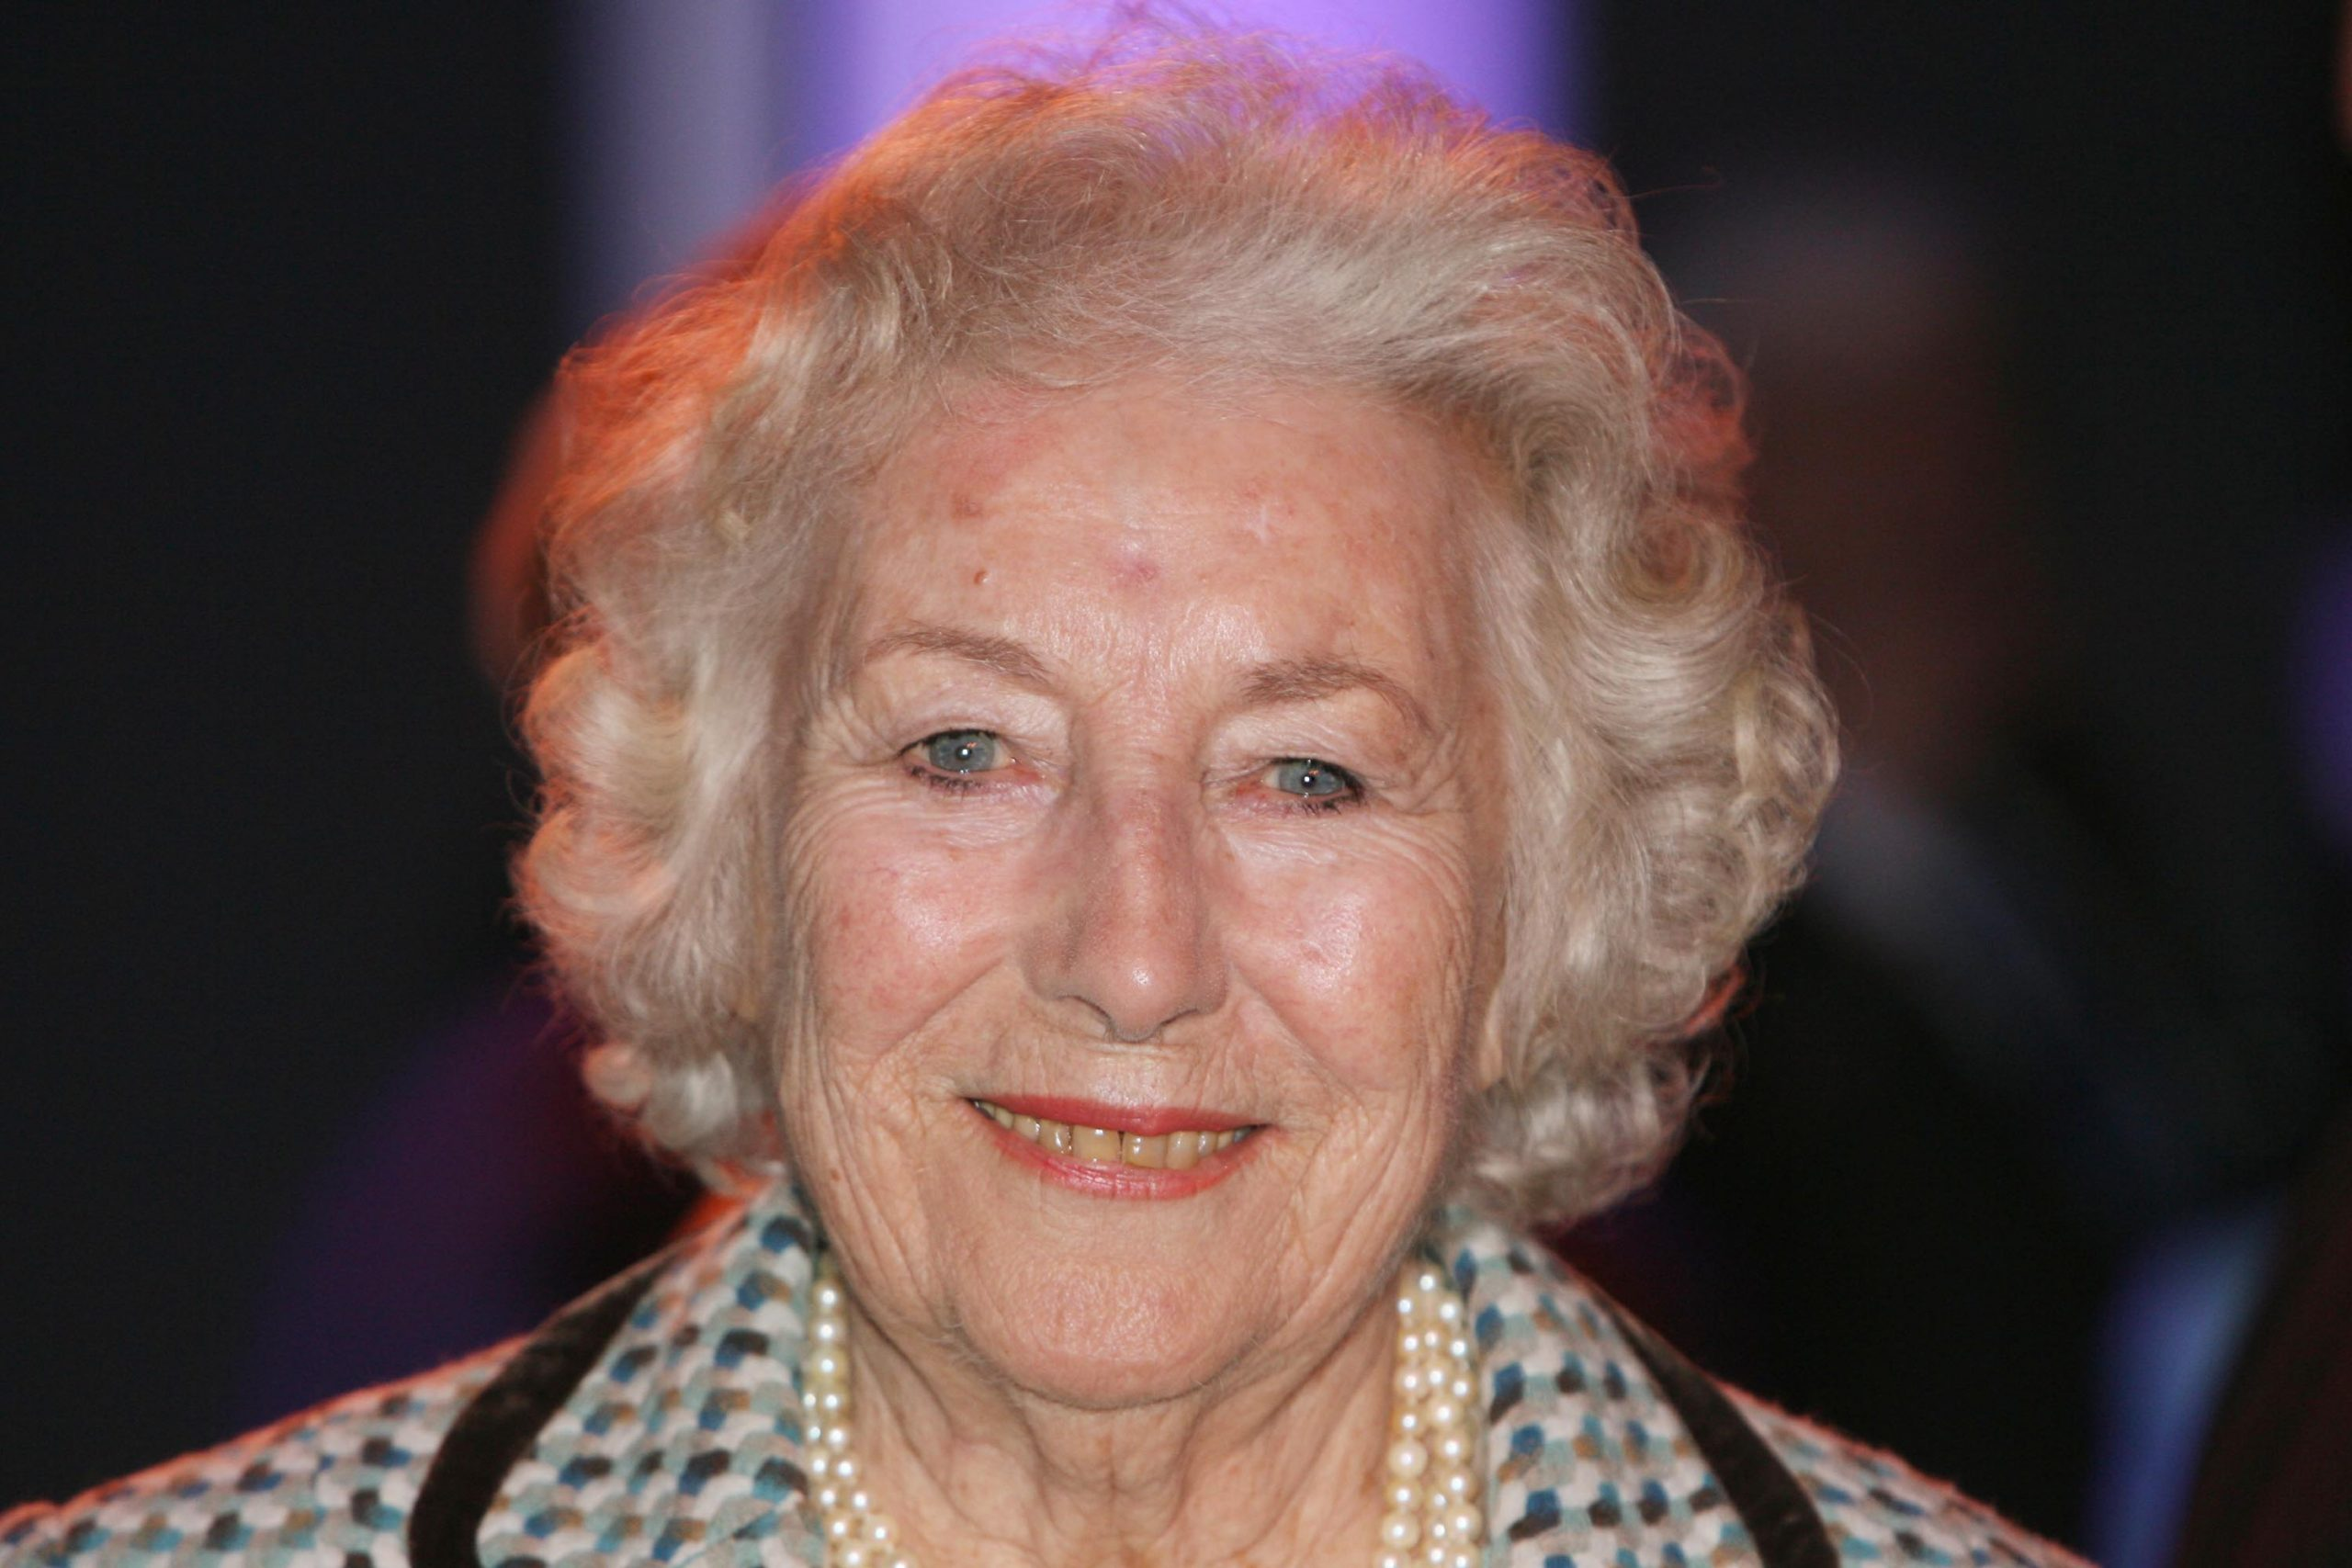 Vera Lynn, the singer who motivated troops in World War II, died at 103